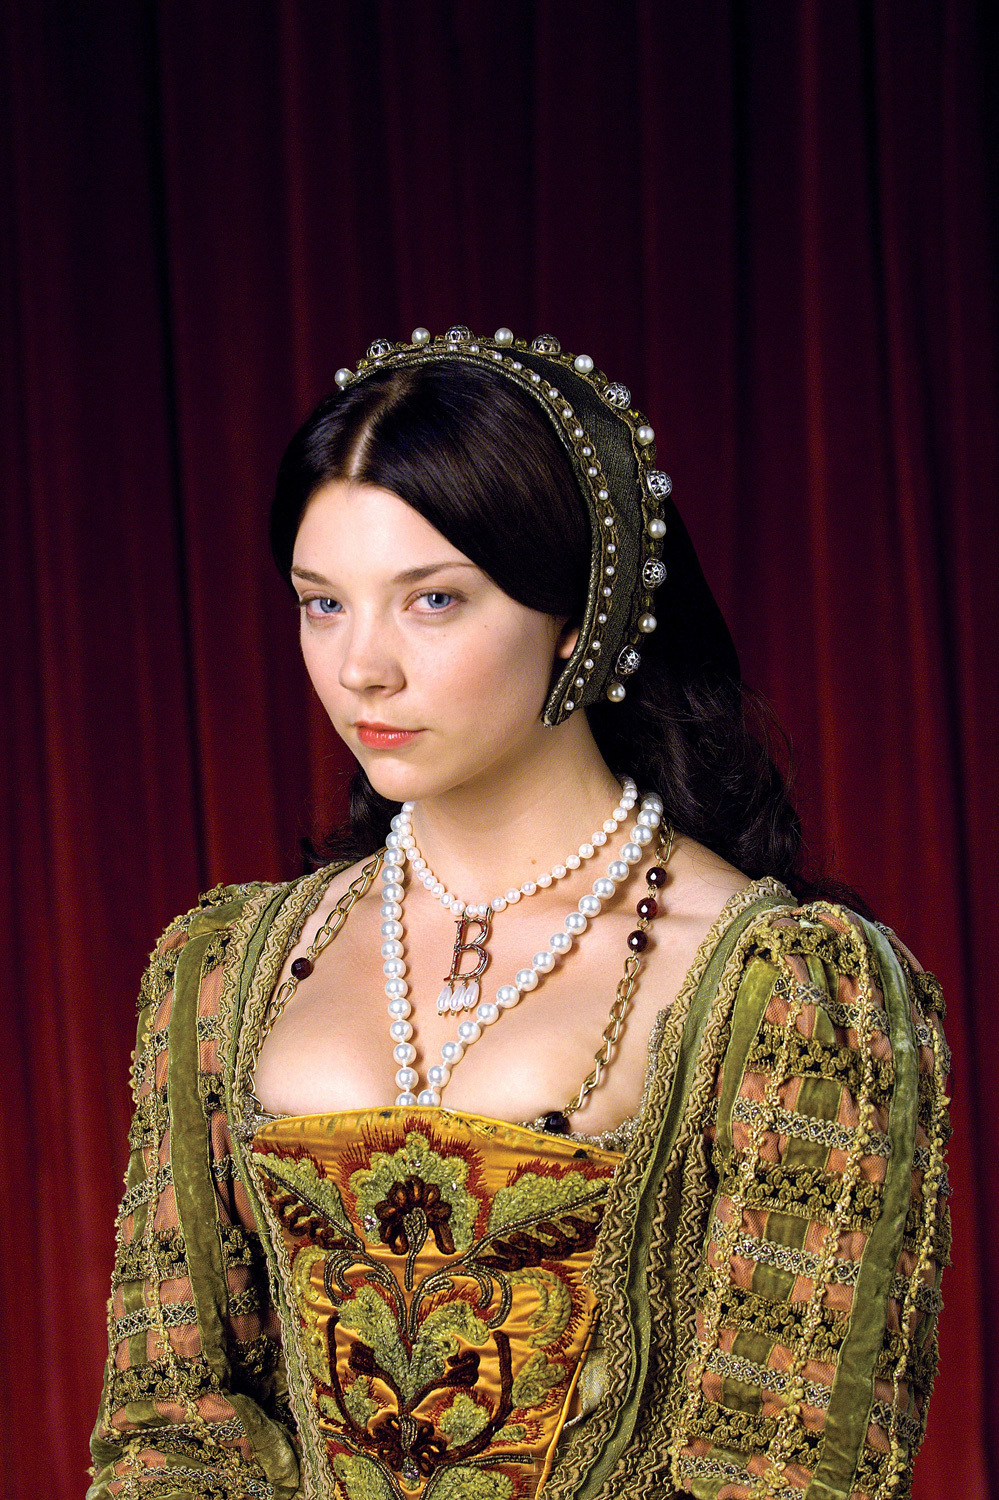 Image result for anne boleyn natalie dormer